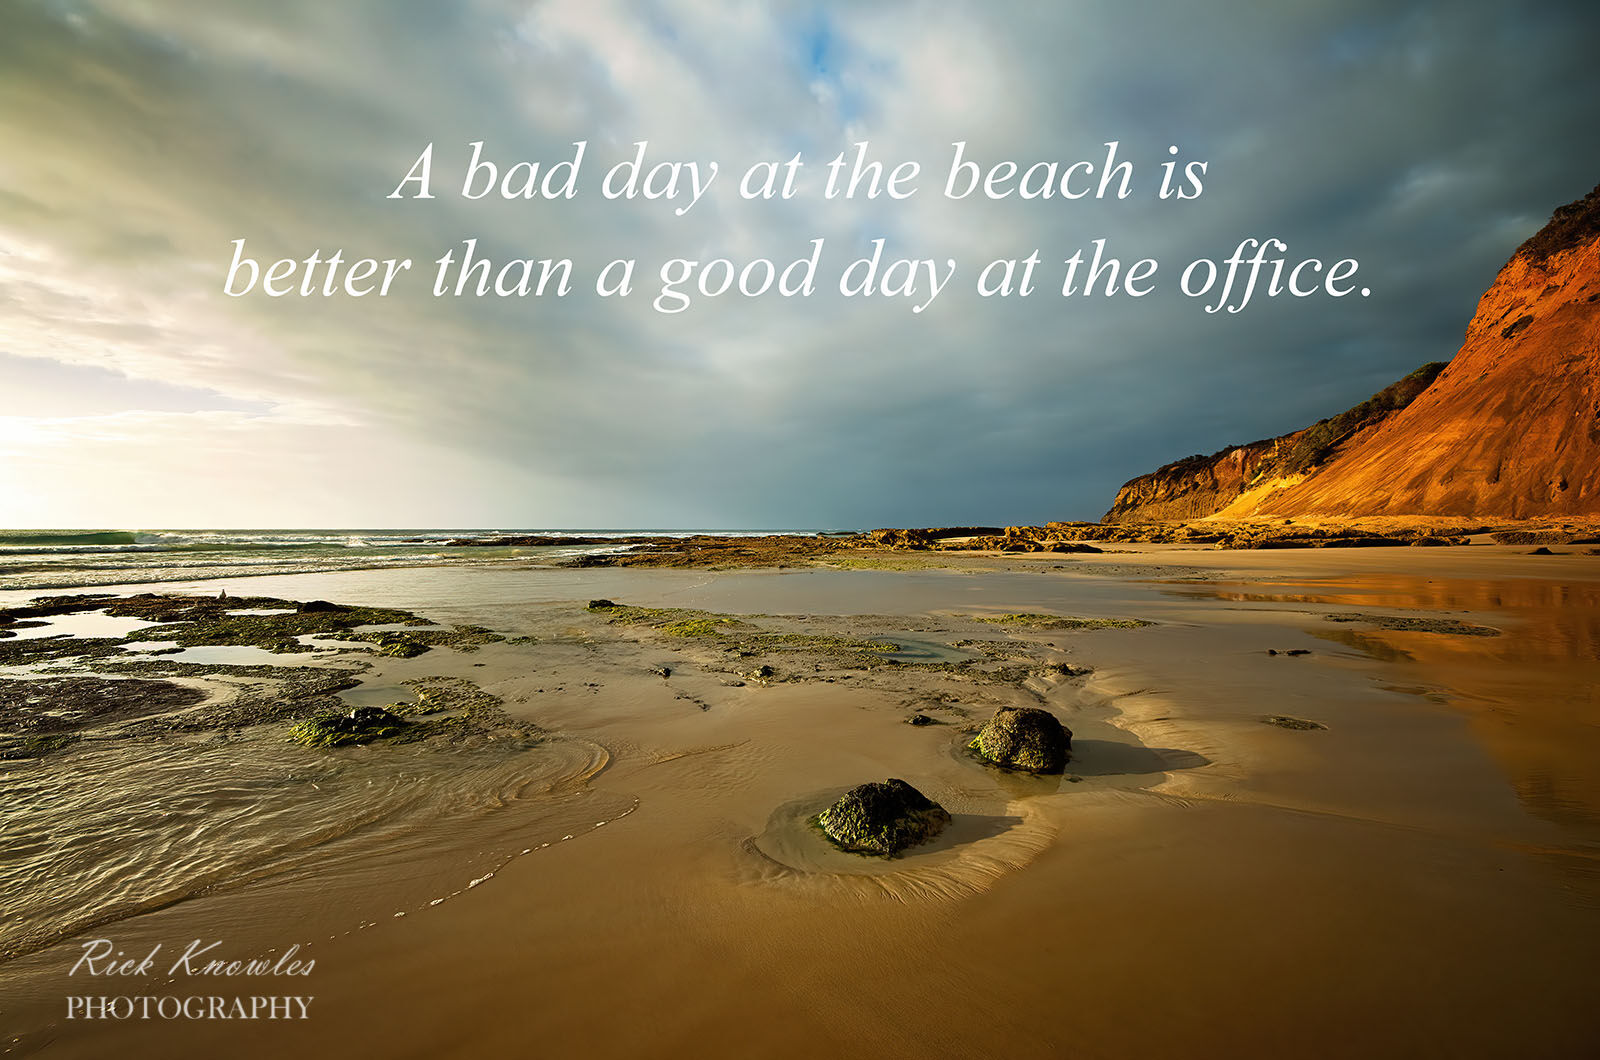 Bad Day At The Beach